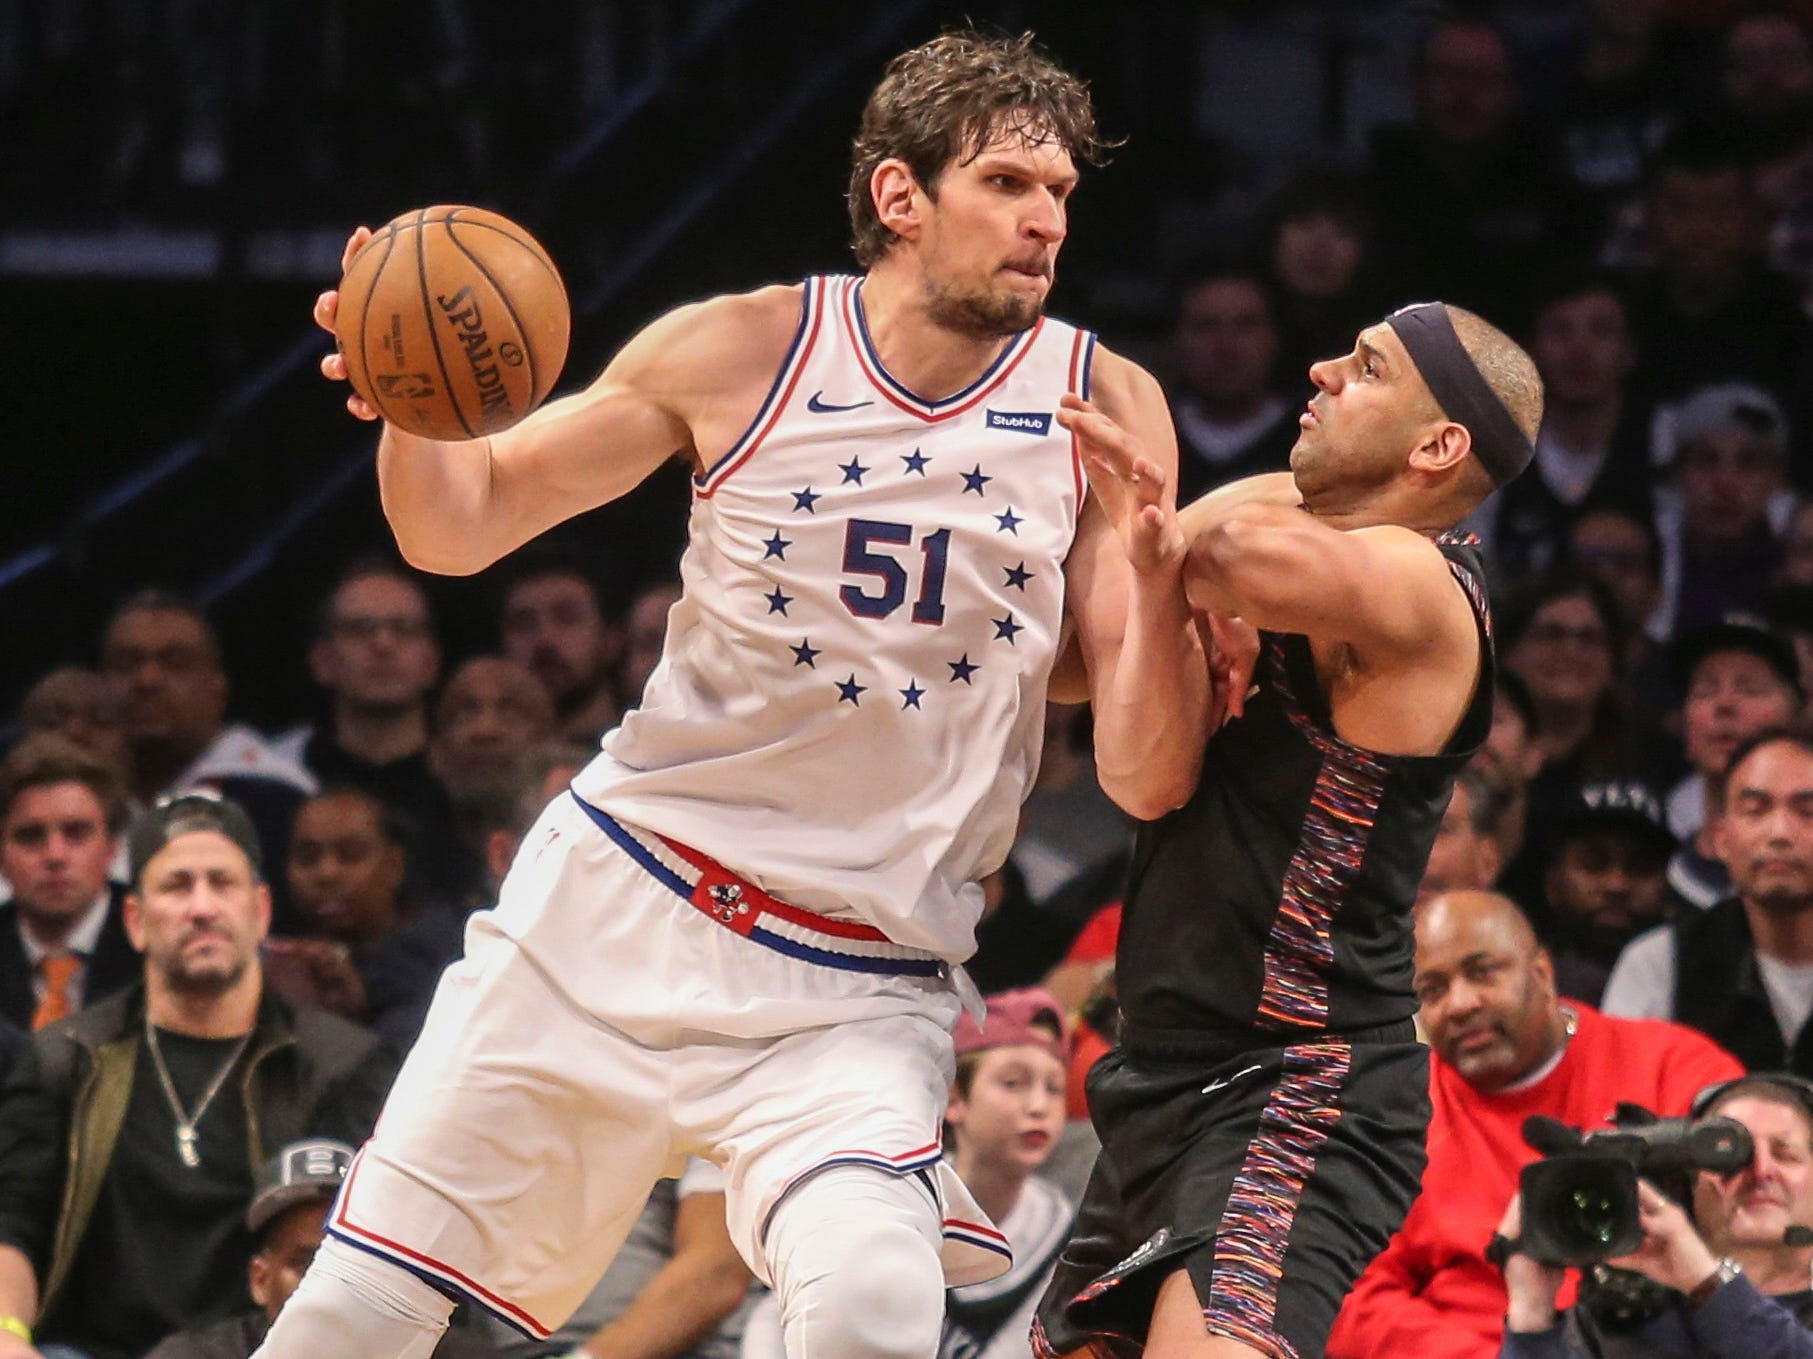 April 18: Nets forward Jared Dudley (6) tries to hold his ground against 76ers center Boban Marjanovic (51) during Game 4.